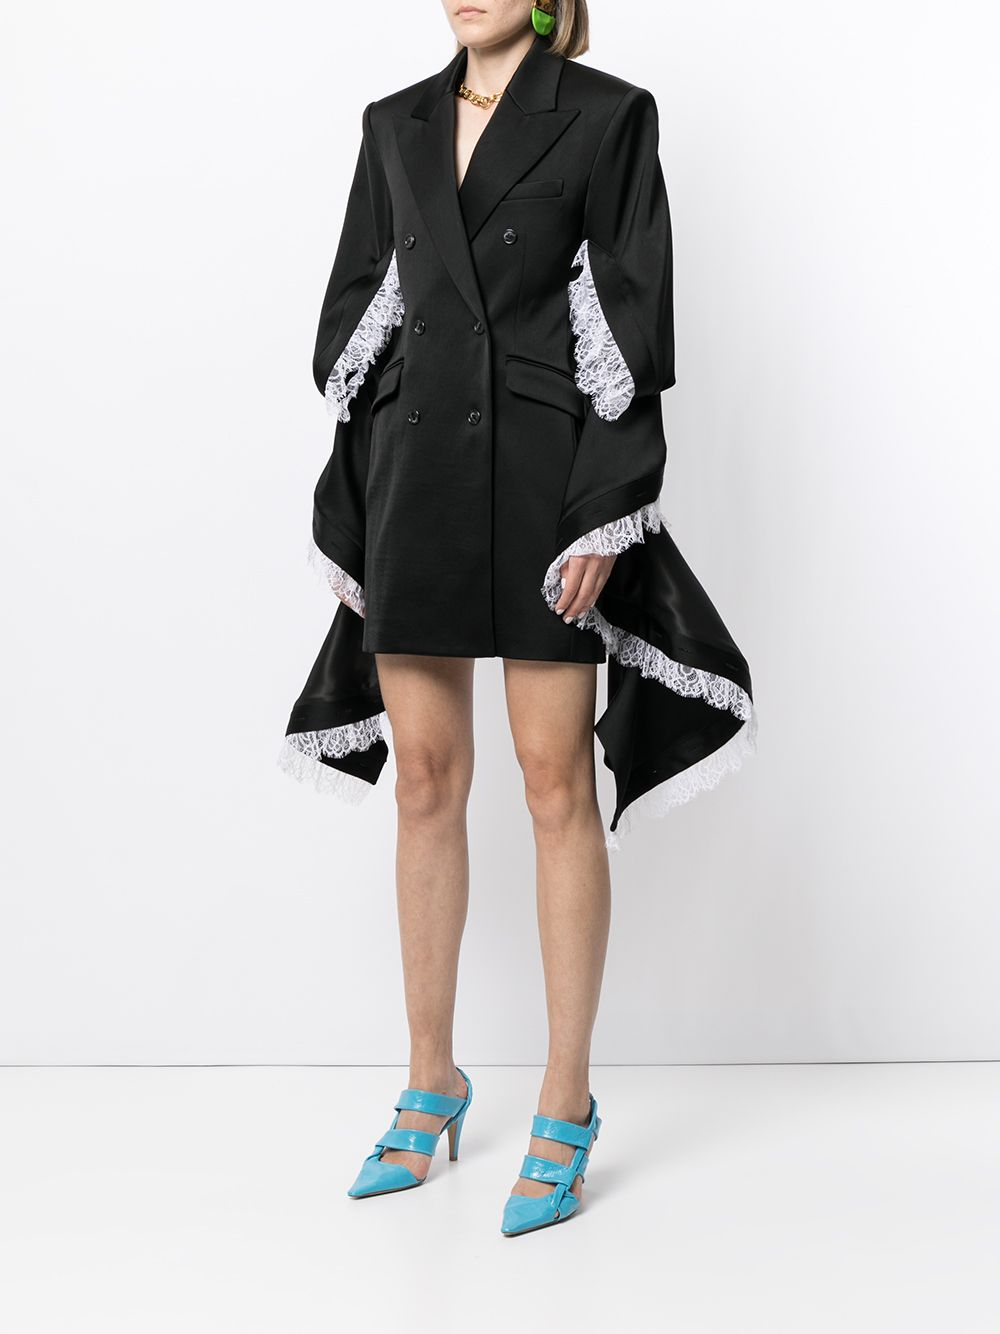 Y/PROJECT WOMEN RUFFLE SLEEVE BLAZER DRESS